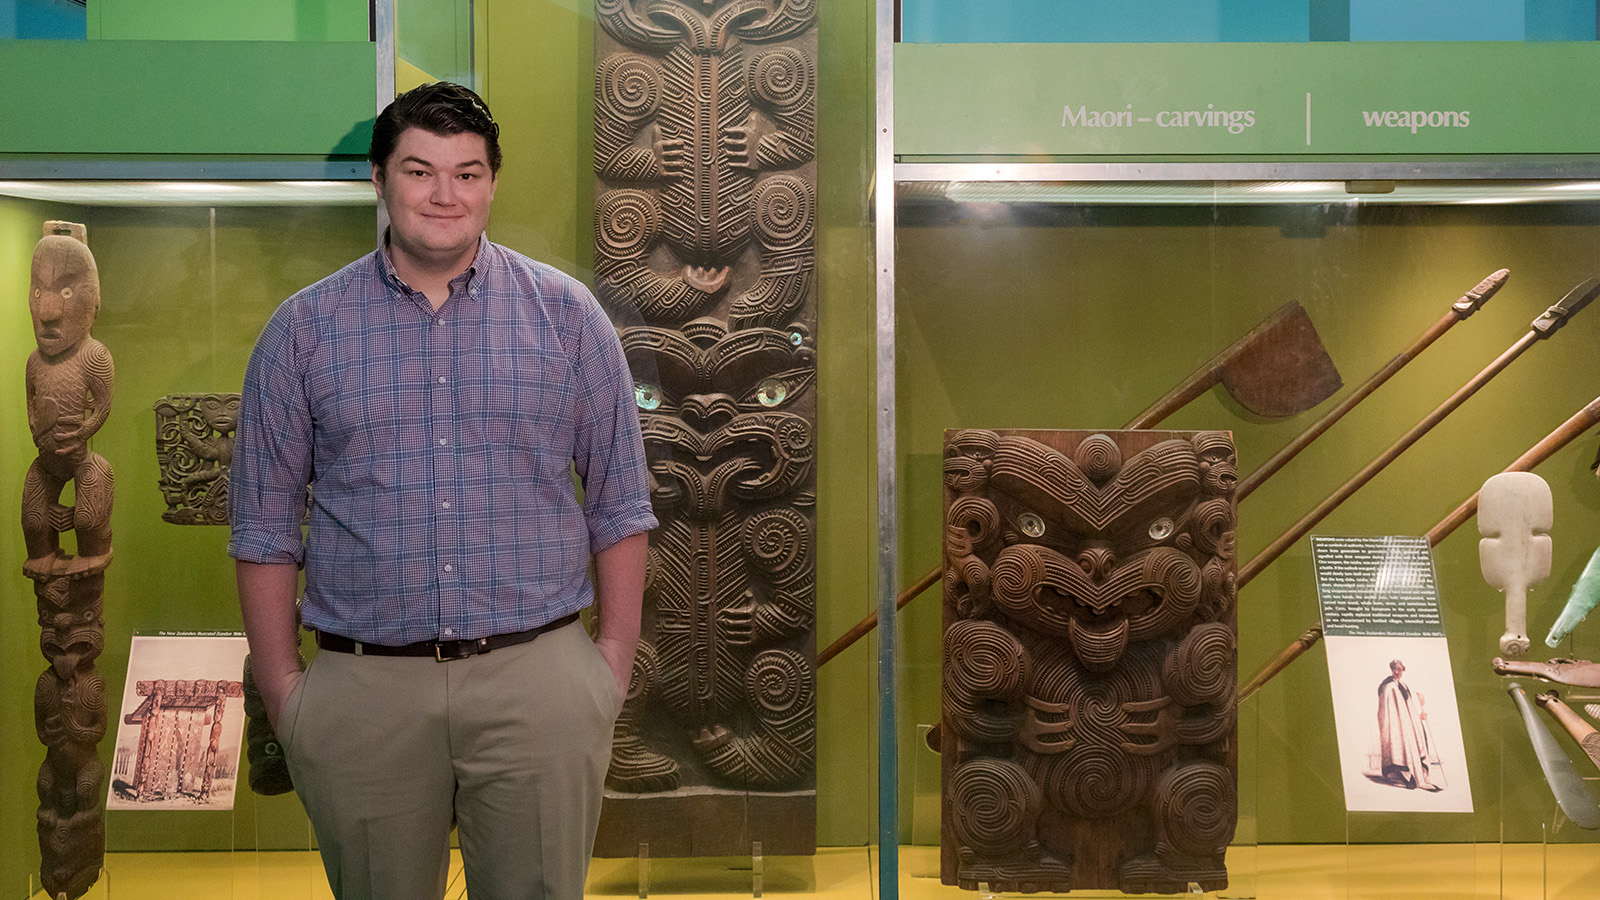 Colin Gravelle stands in front of a case of Maori artifacts.